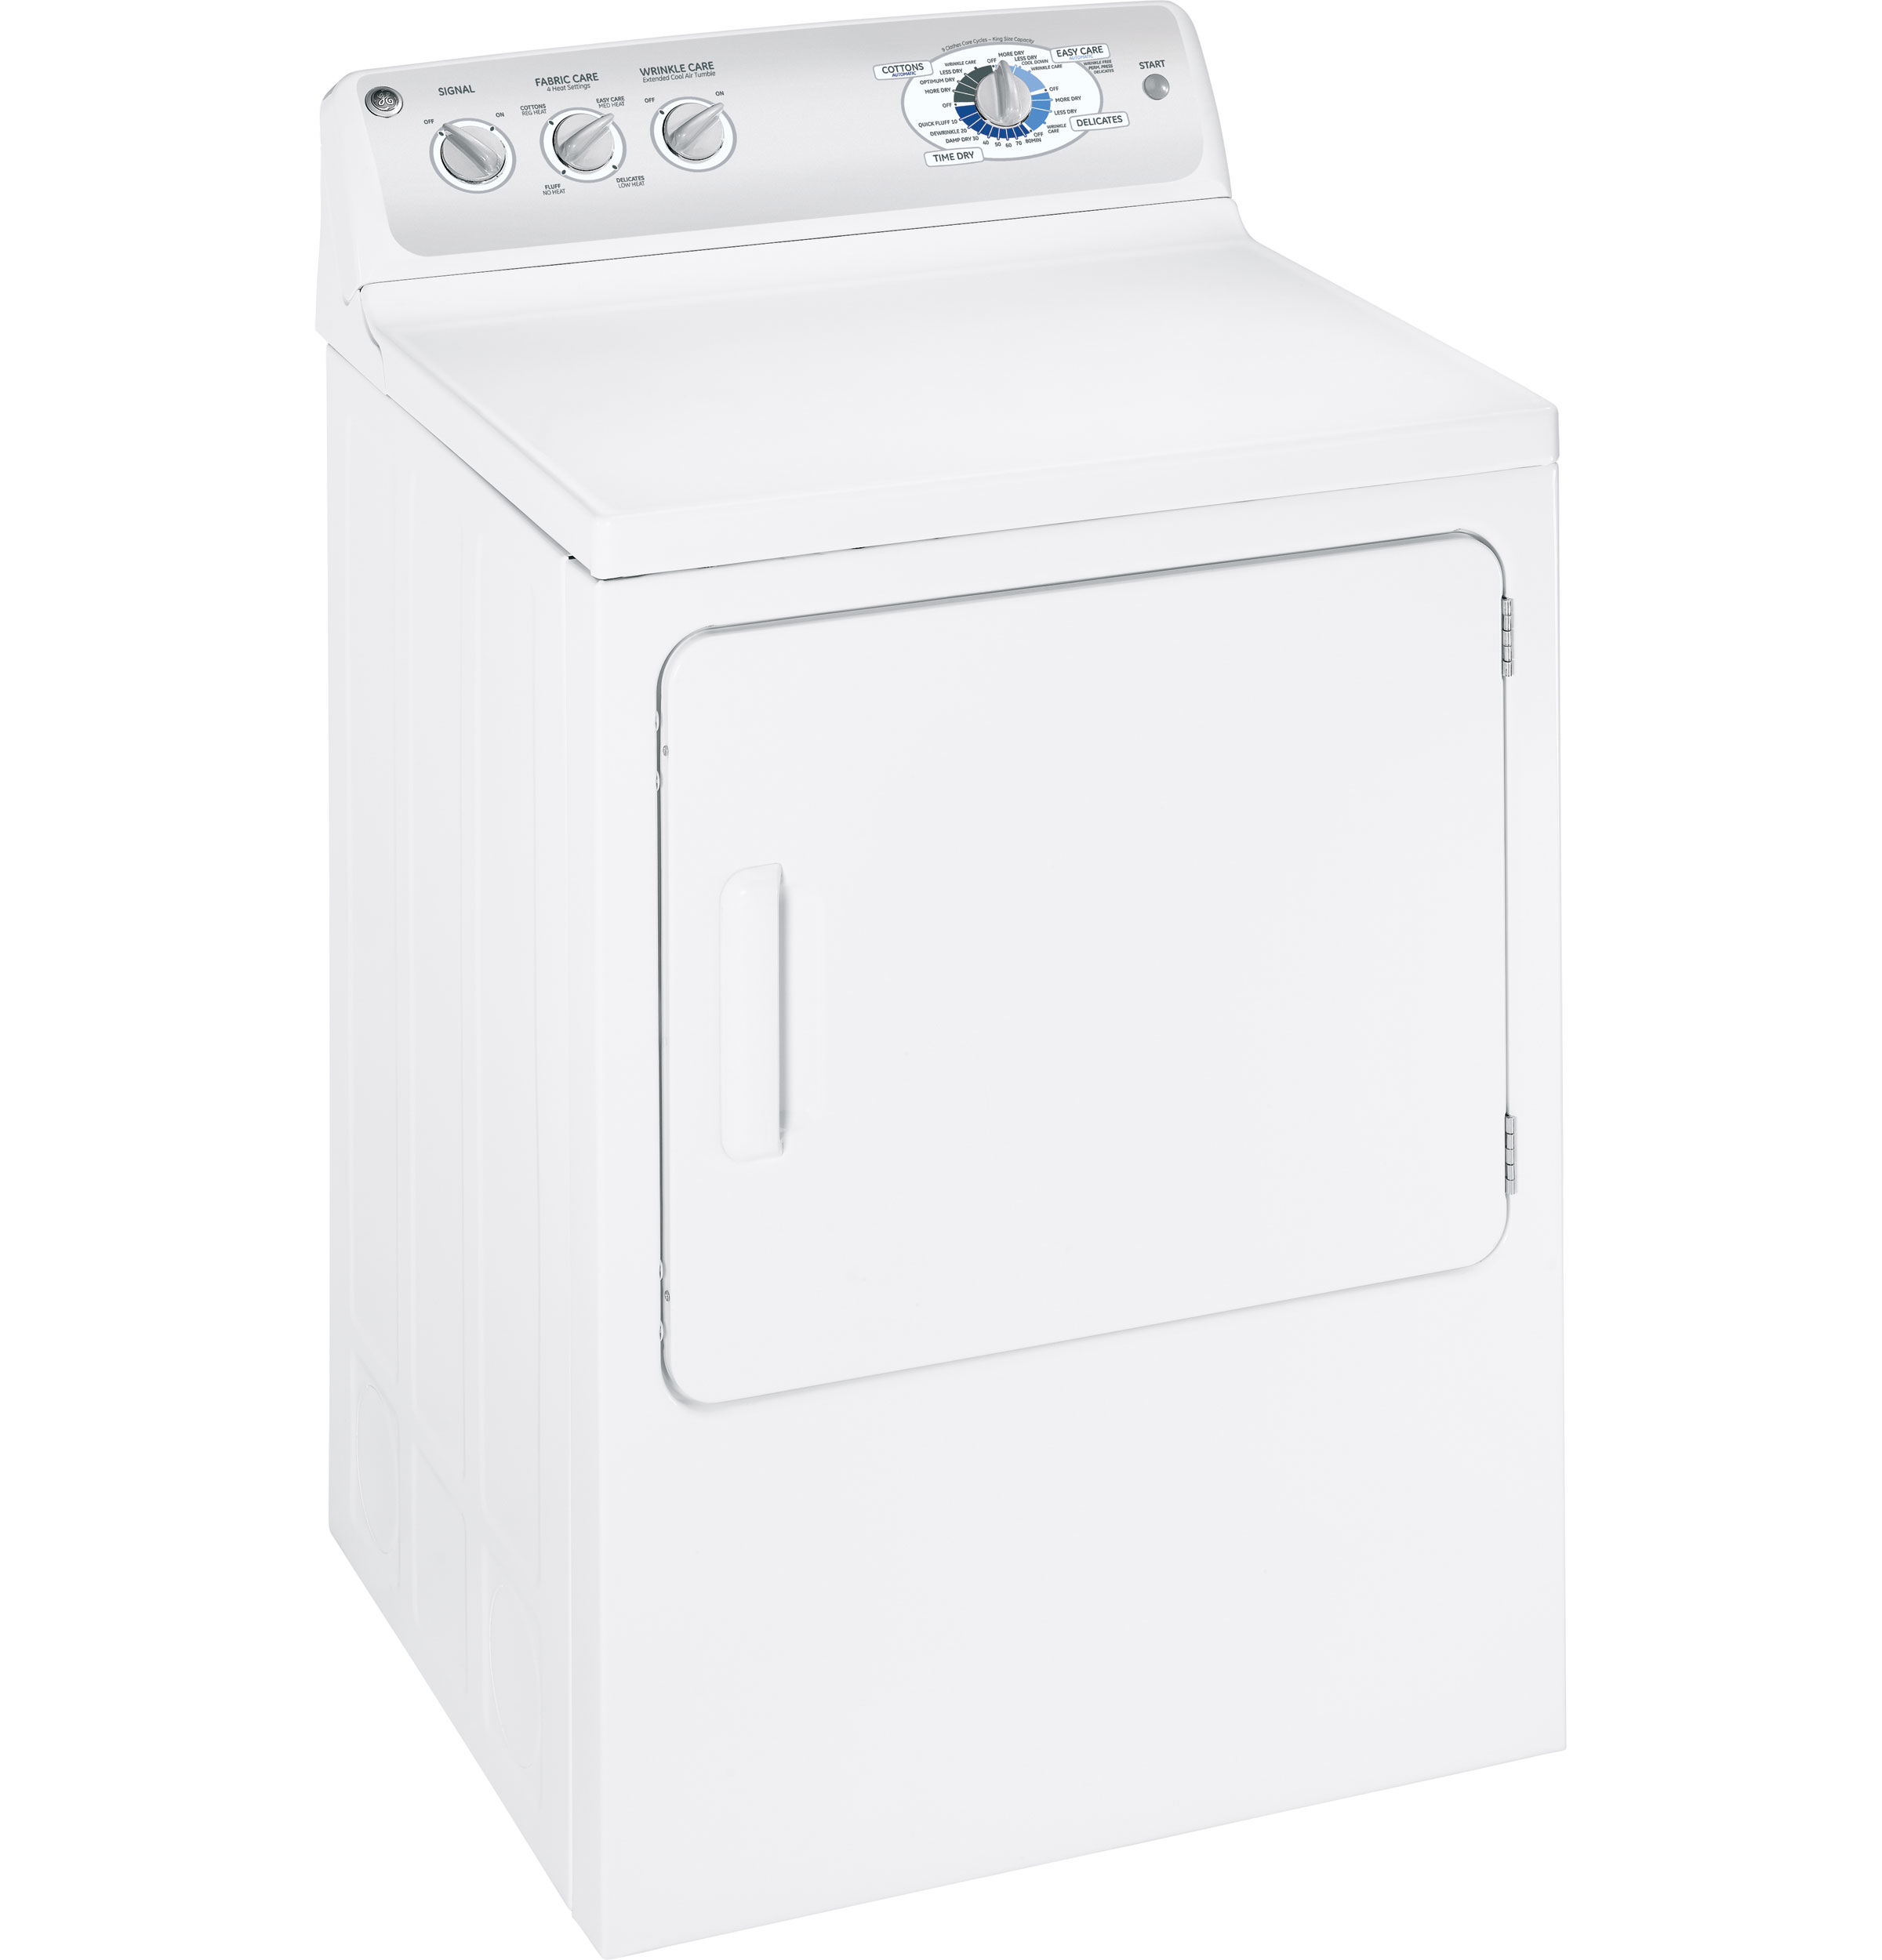 Ge Appliance Customer Service 800 Gear 70 Cu Ft Super Capacity Electric Dryer With Stainless Steel